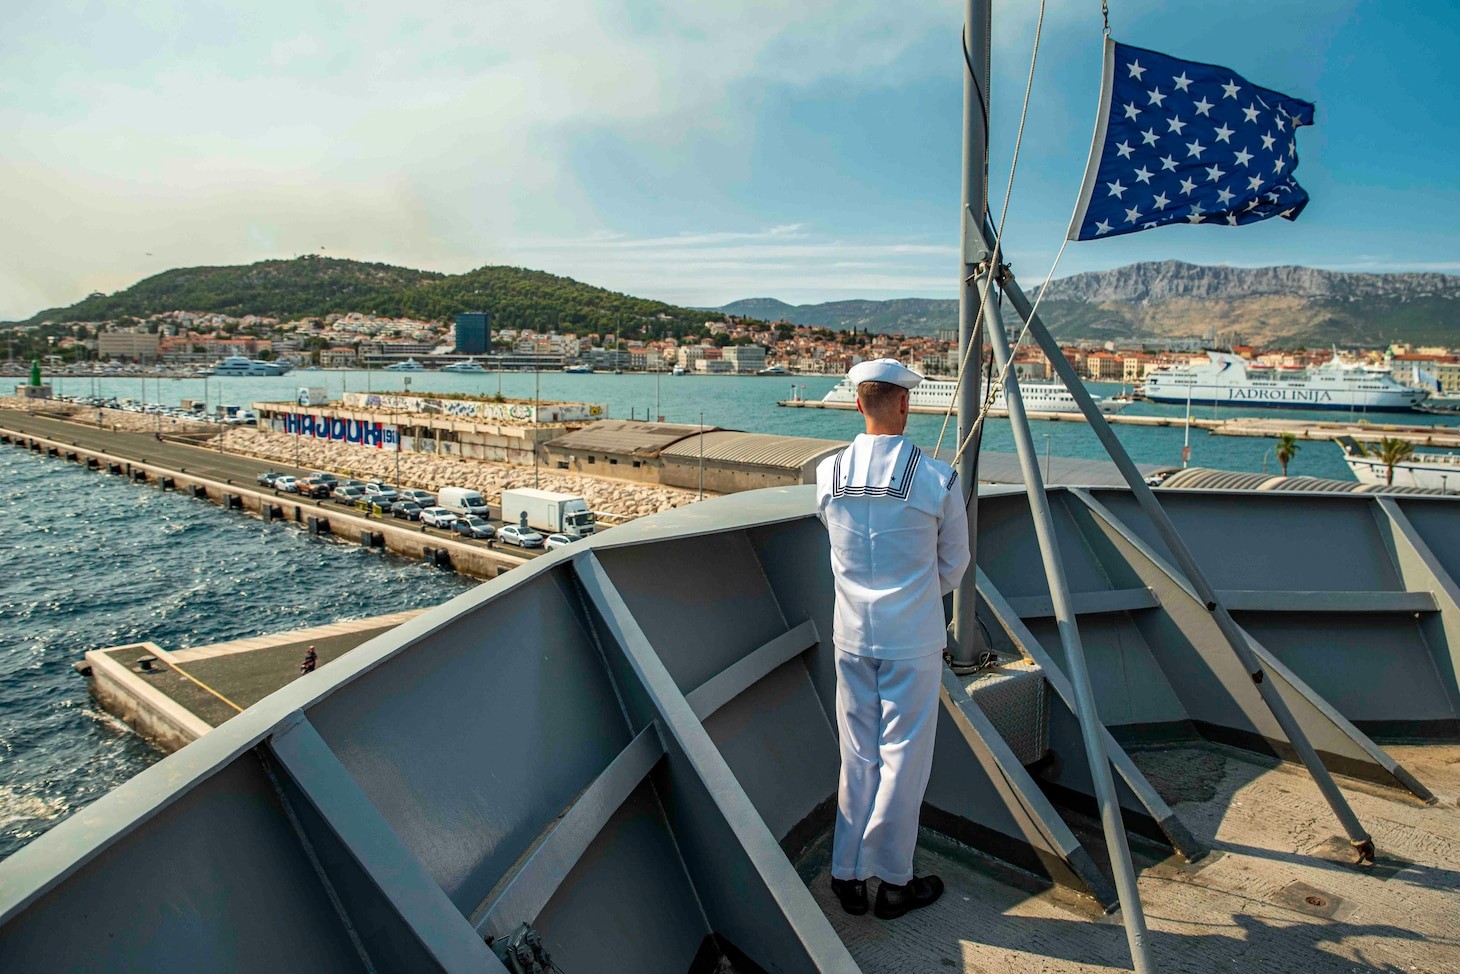 Hospital Corpsman 2nd Class Donald Coony lowers the ships Jack   aboard the Blue Ridge-class command and control ship USS Mount Whitney (LCC 20) as the ship gets underway from Split, Croatia, August 2, 2021. Mount Whitney is the U.S. Sixth Fleet flagship, homeported in Gaeta, and operates with a combined crew of U.S. Sailors and Military Sealift Command civil service mariners.